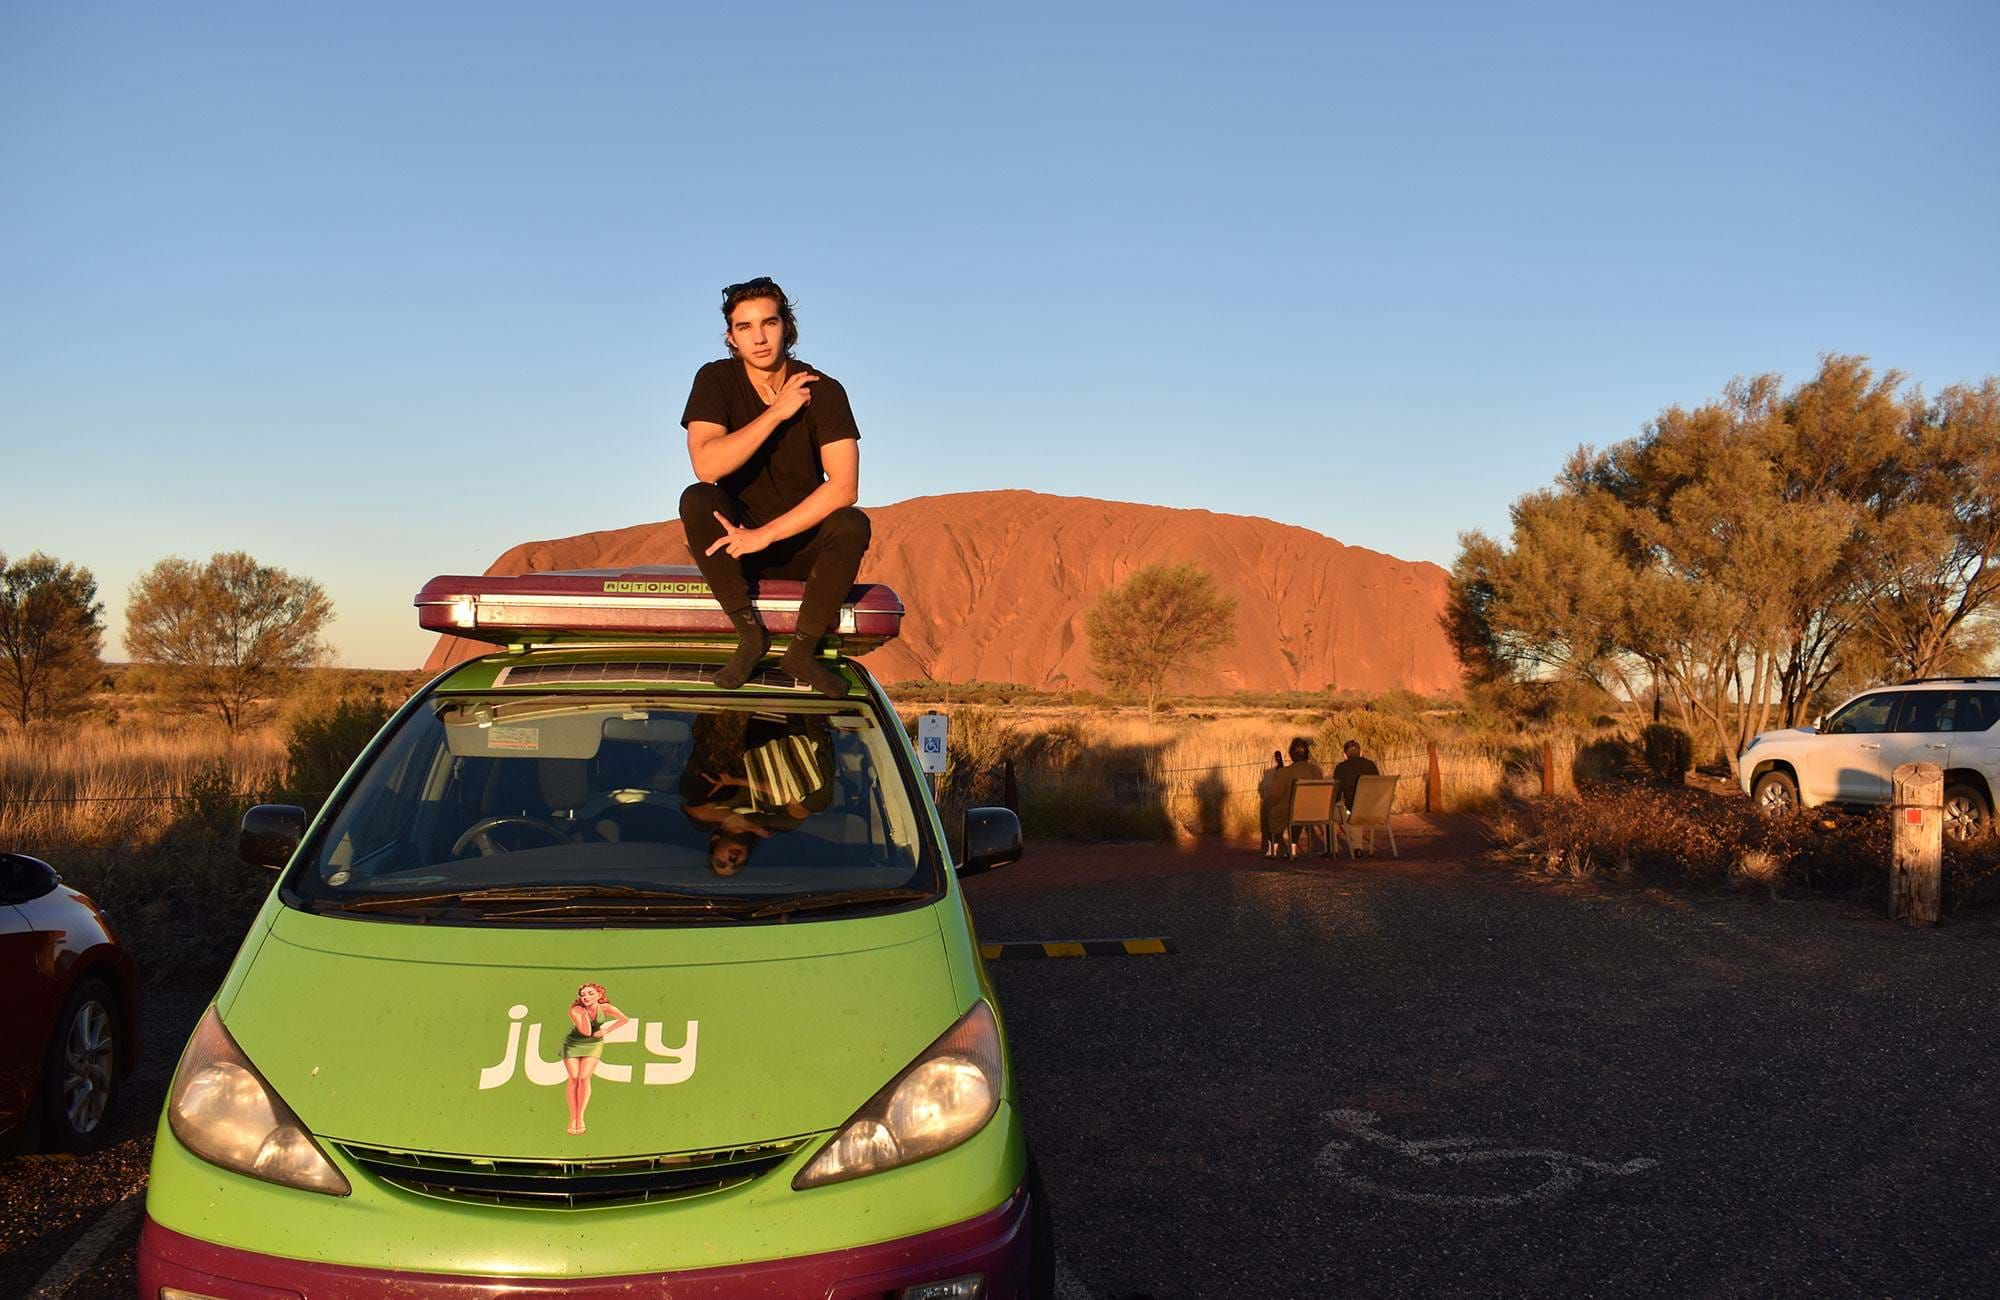 oliver on top of a jucy van in front of Uluru in Australia